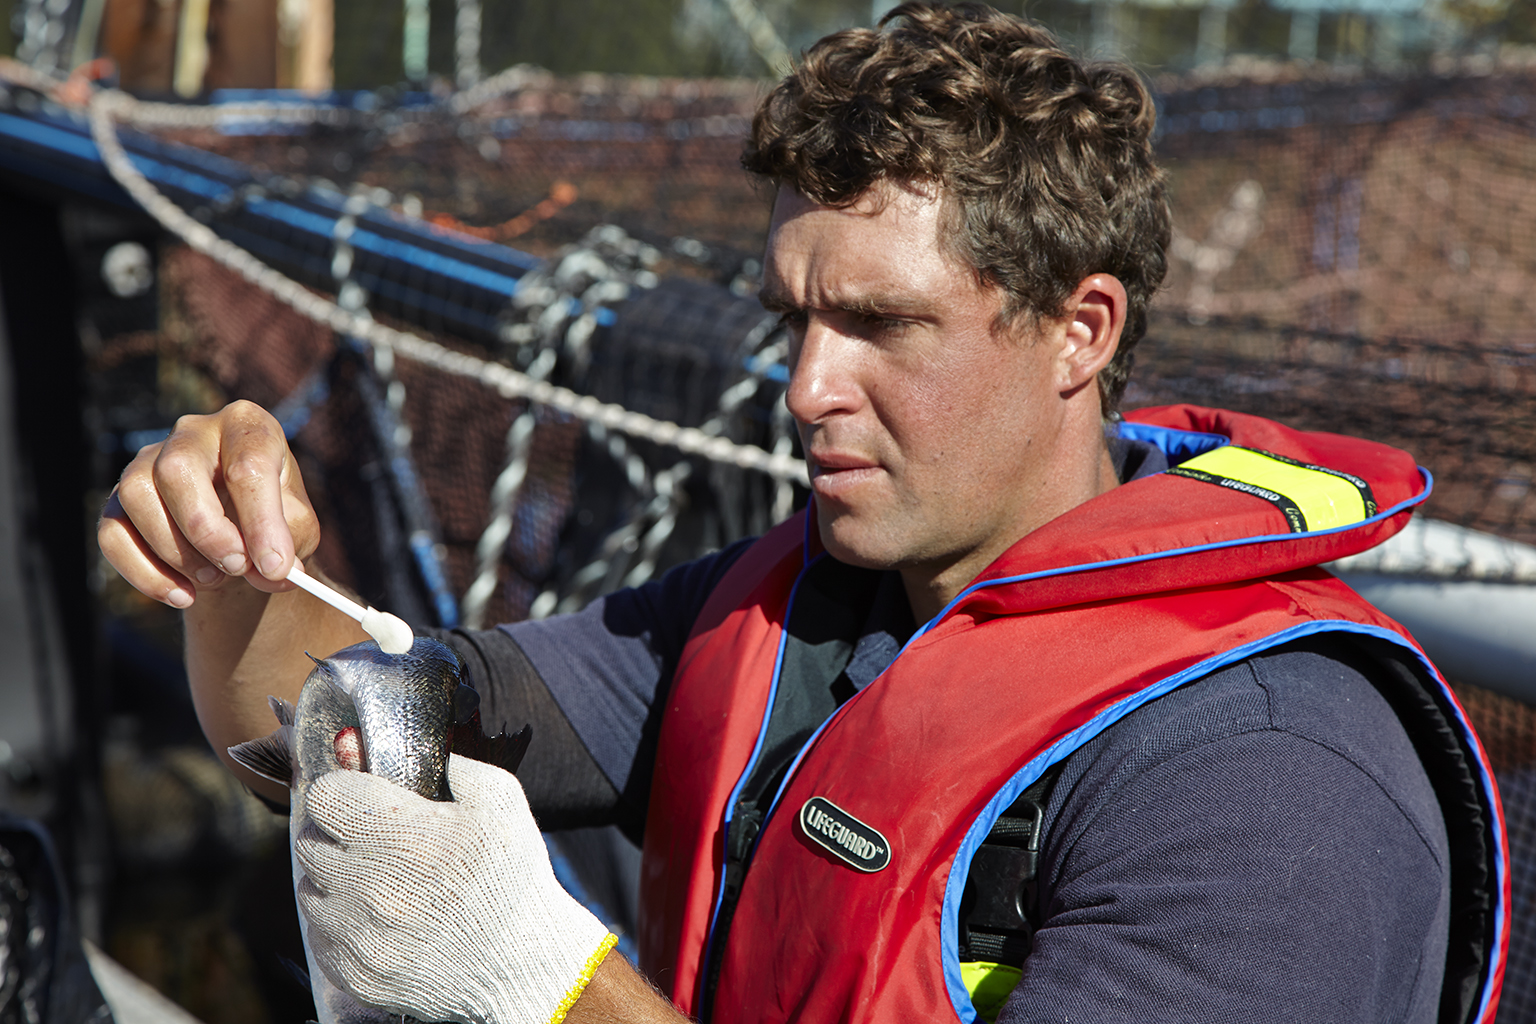 a man on a boat holding a salmon and touching a probe to its gills